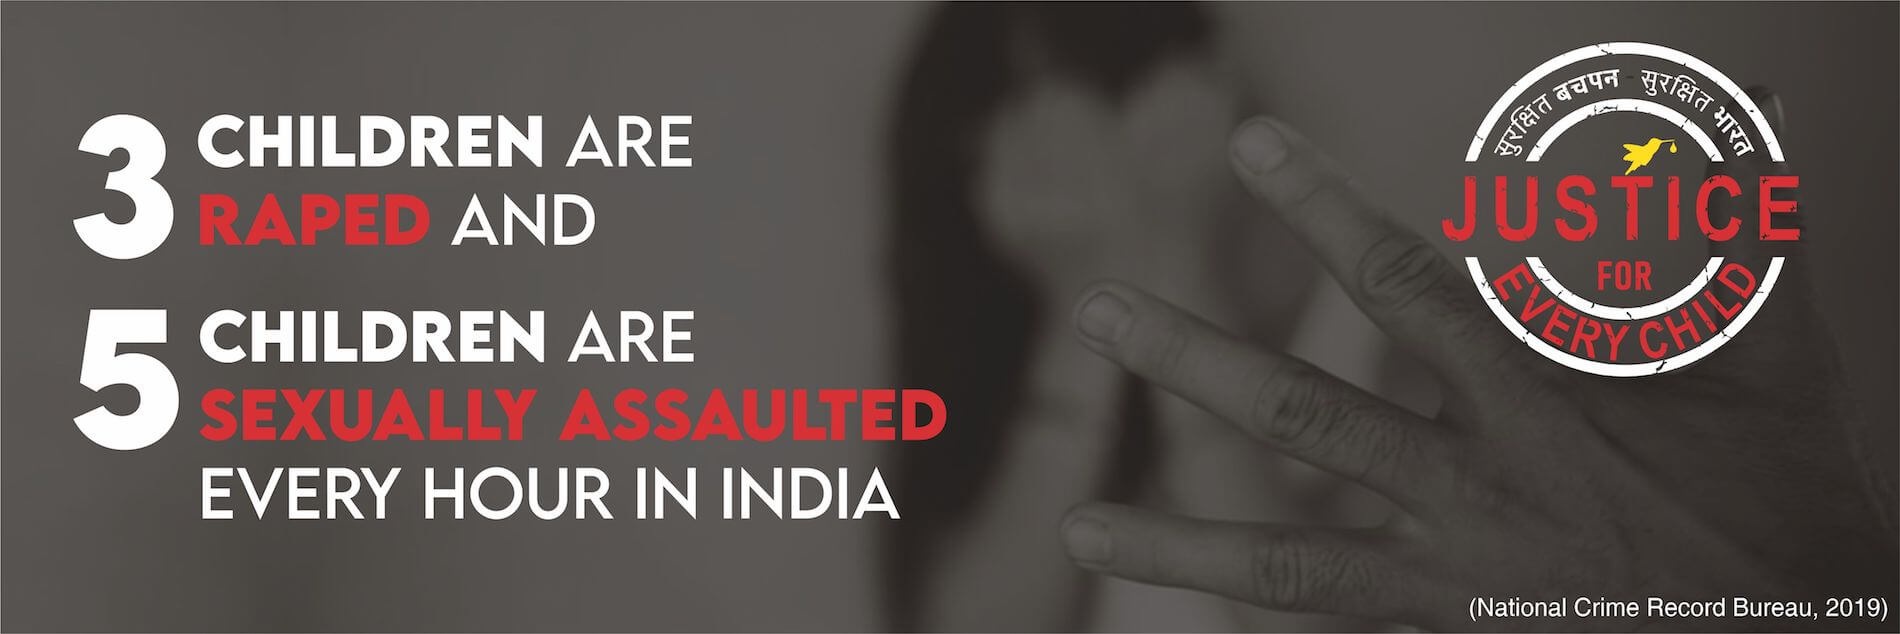 Stop child sexual abuse